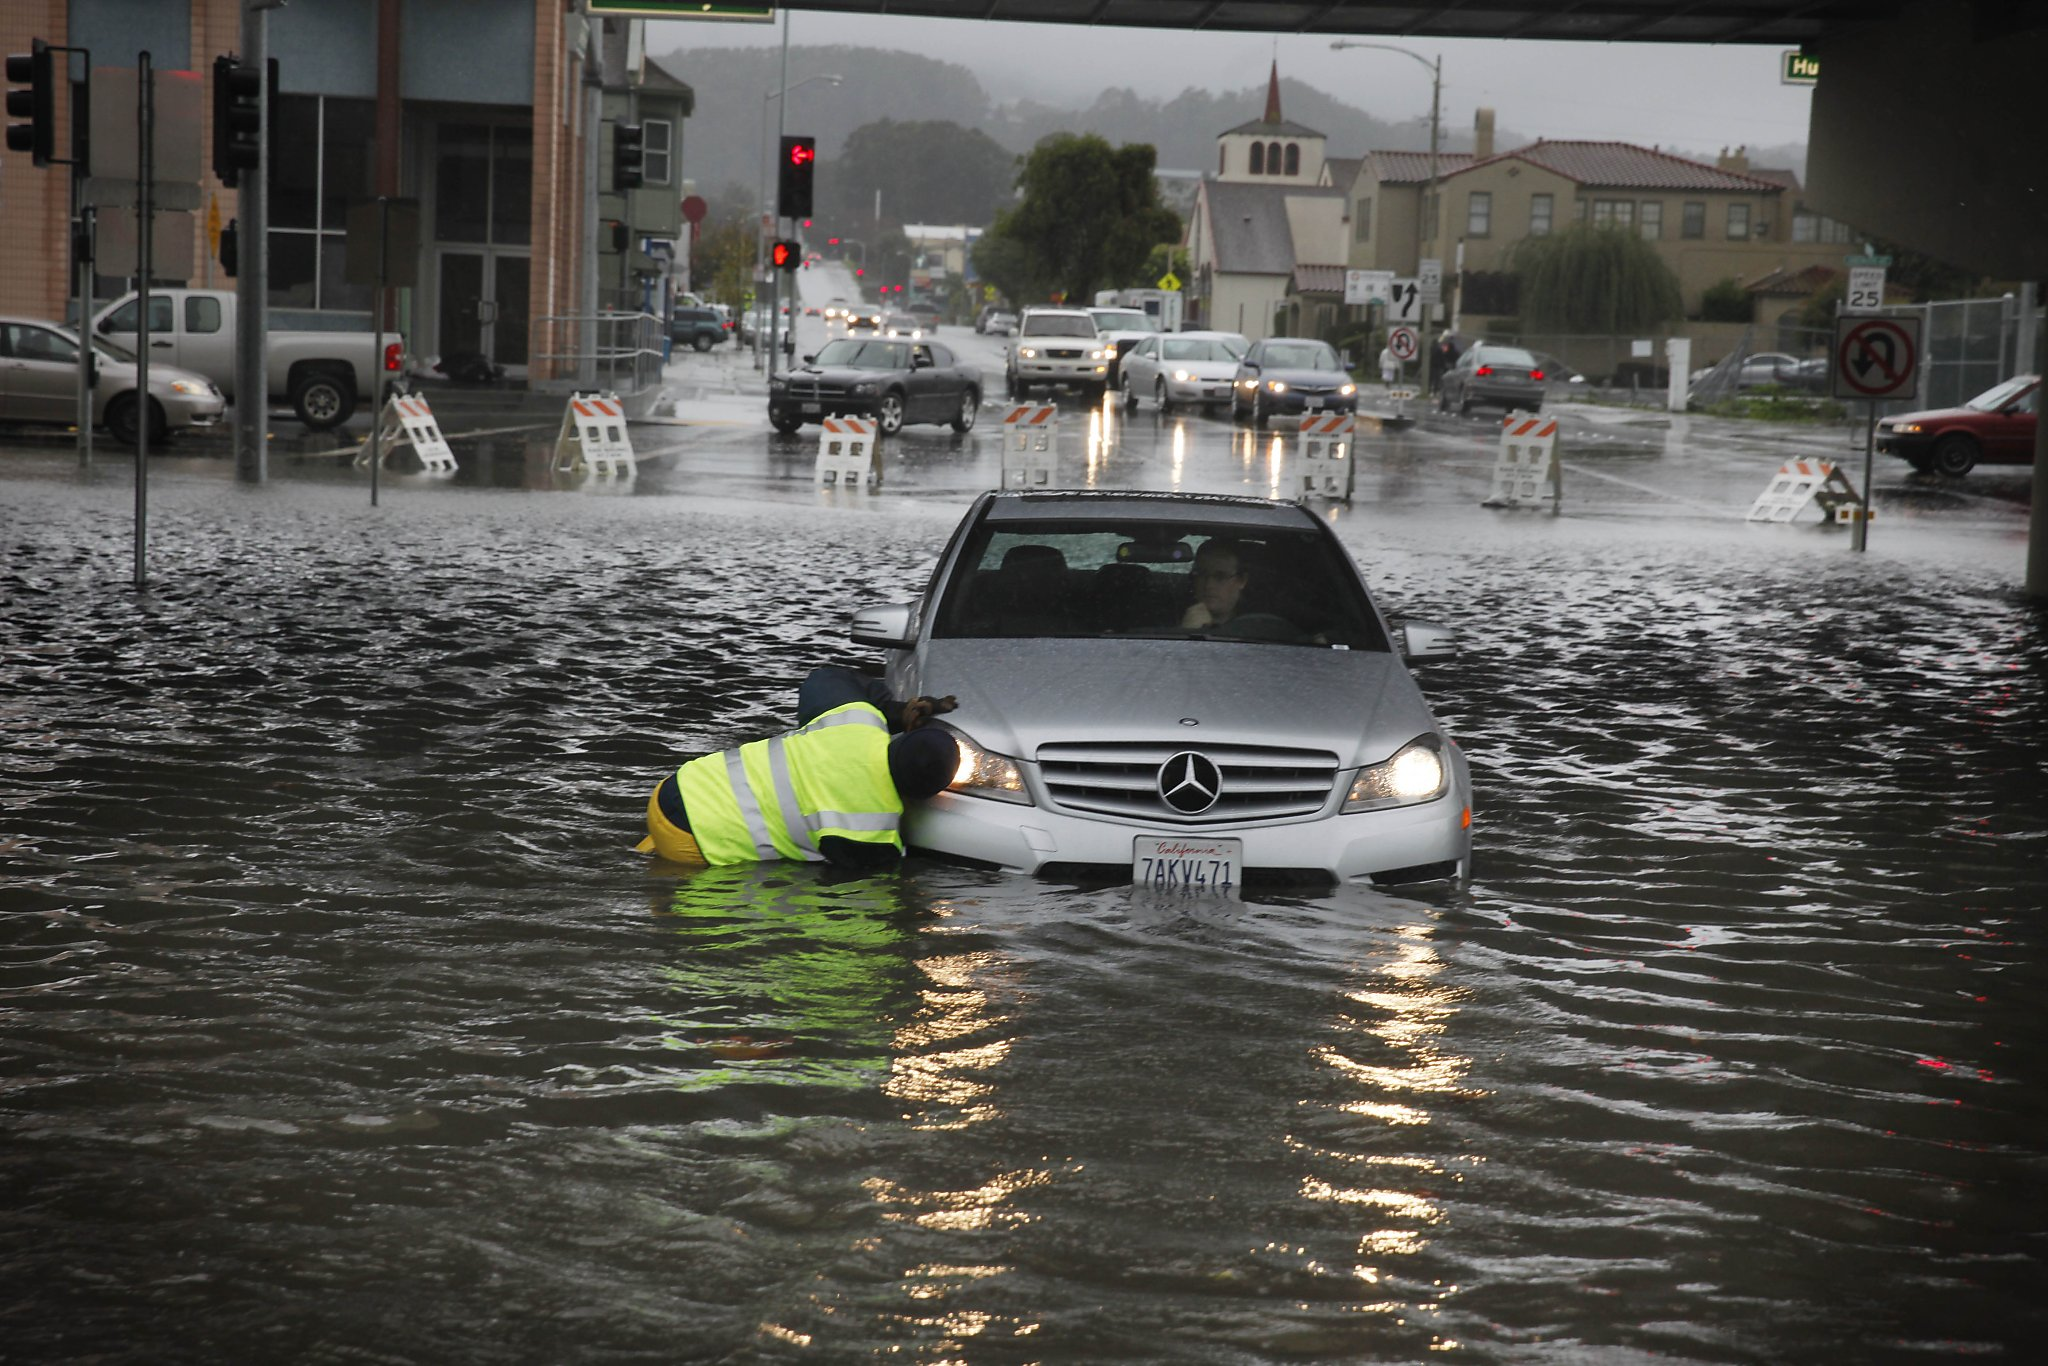 New damage as rains wash out part of Highway 1 in Marin County